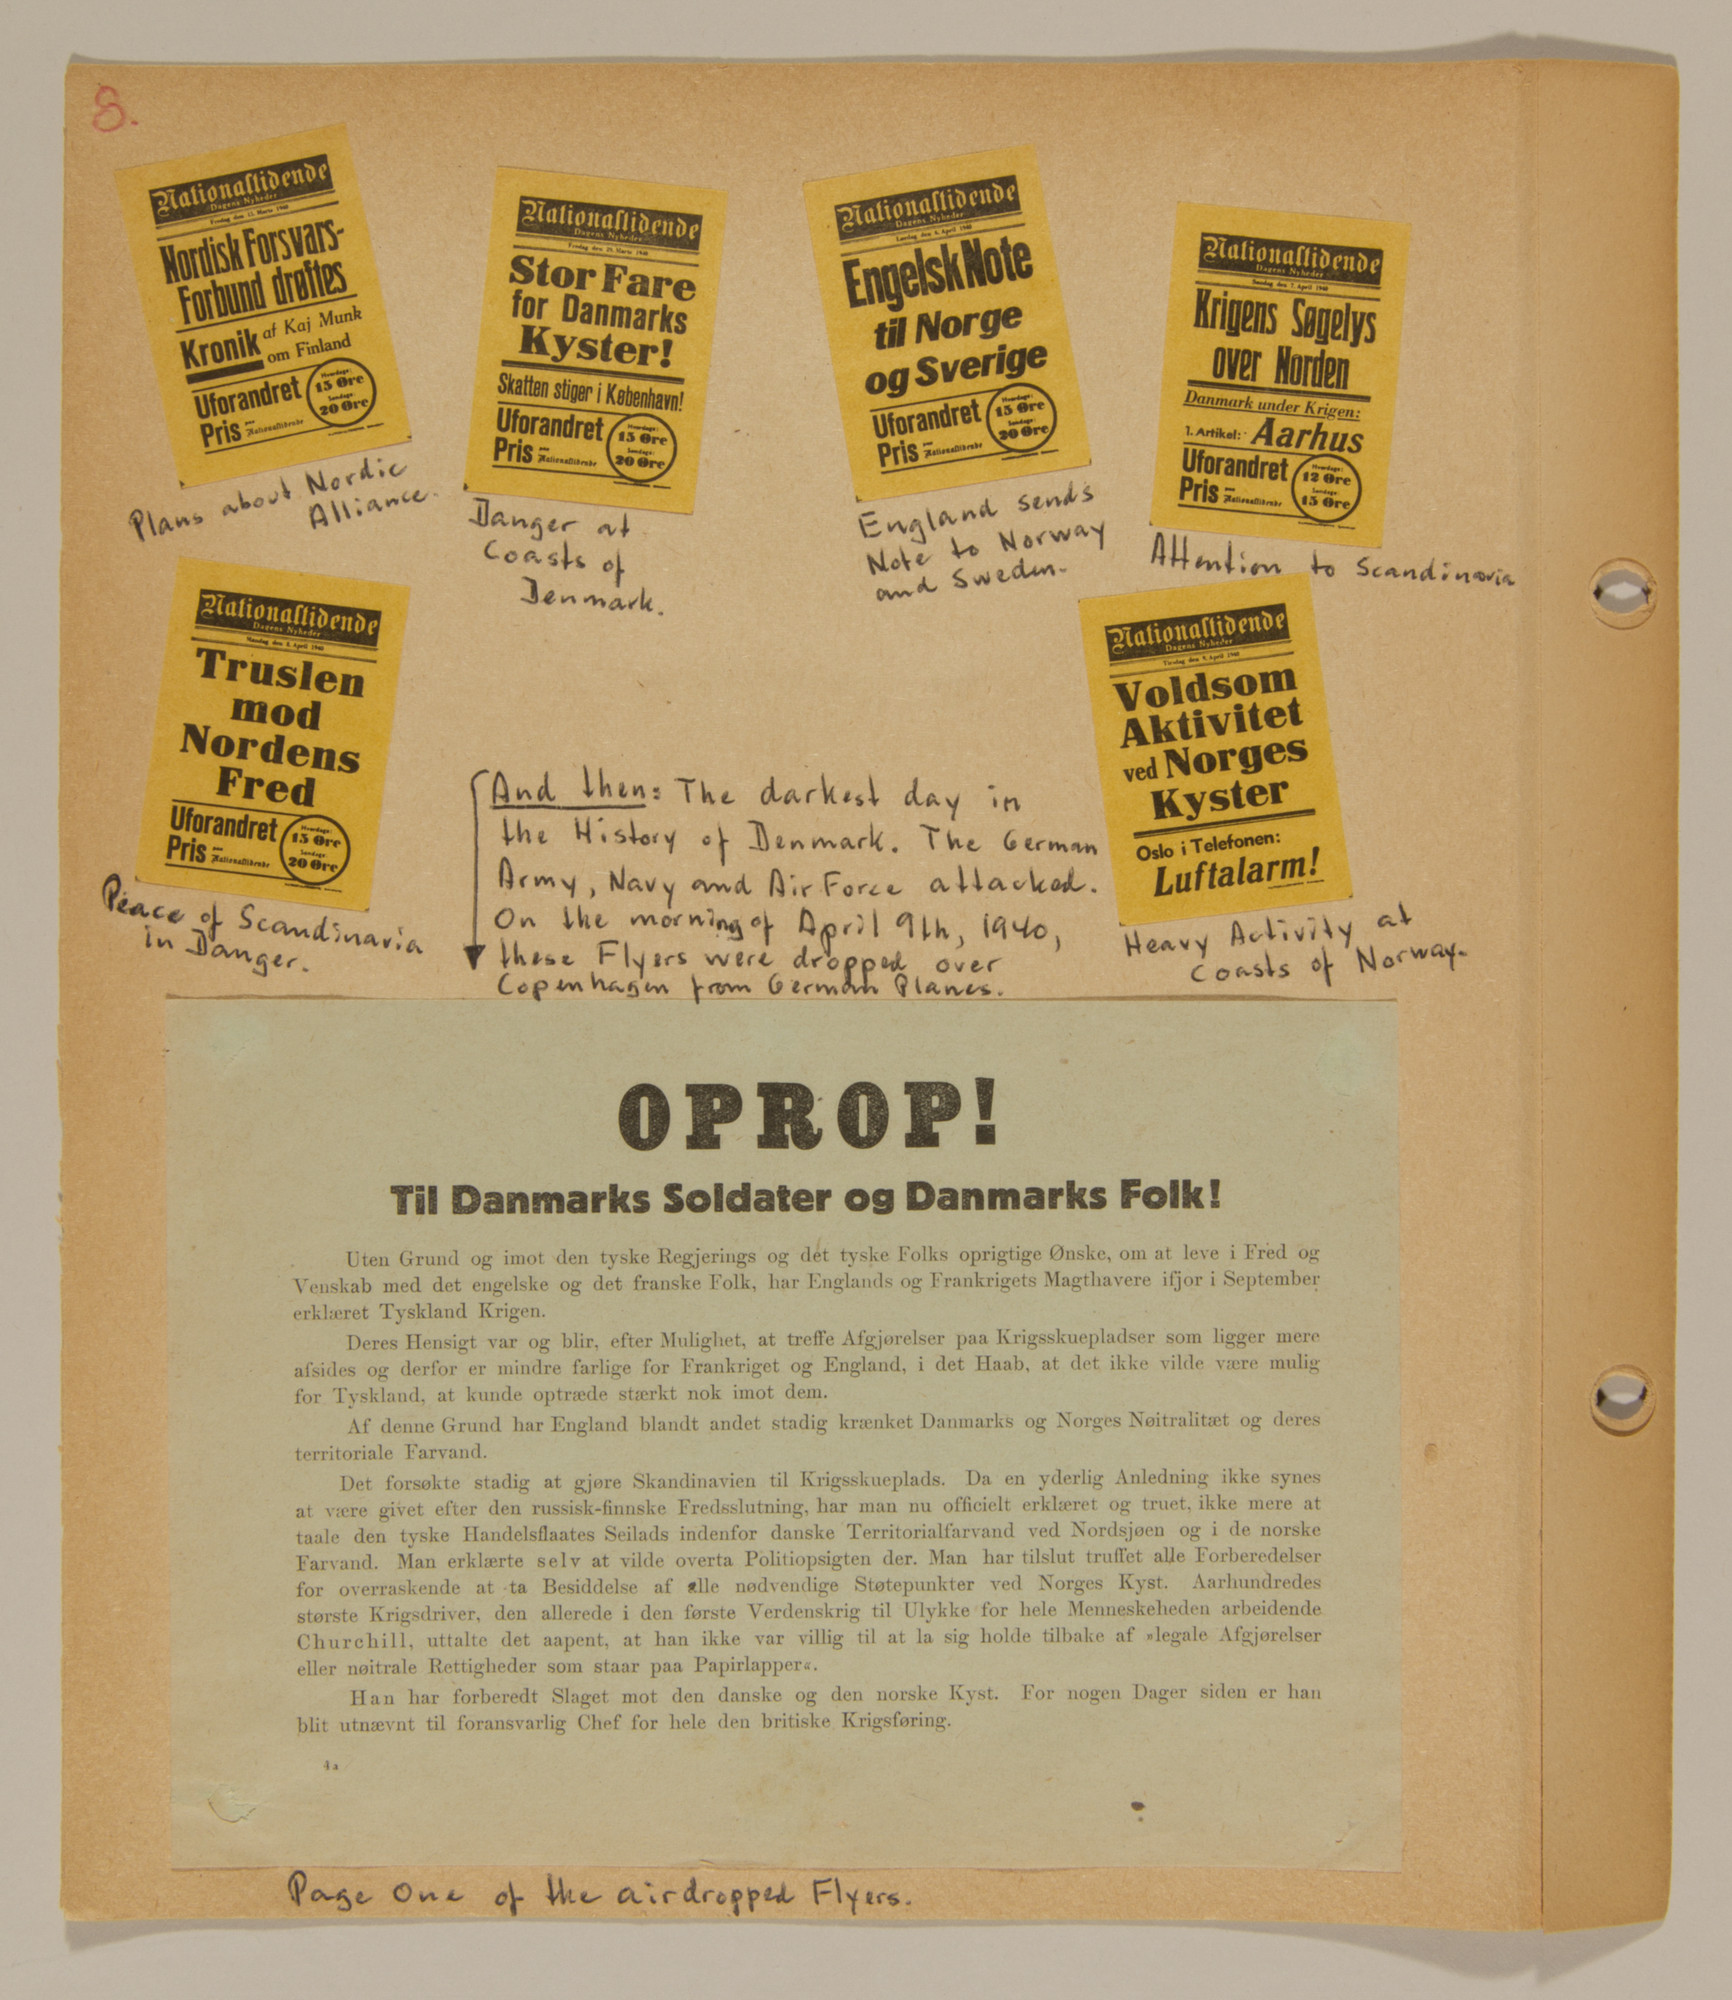 Page from volume one of a set of scrapbooks compiled by Bjorn Sibbern, a Danish policeman and resistance member, documenting the German occupation of Denmark.  This contains a flyer air-dropped from a German airplane.